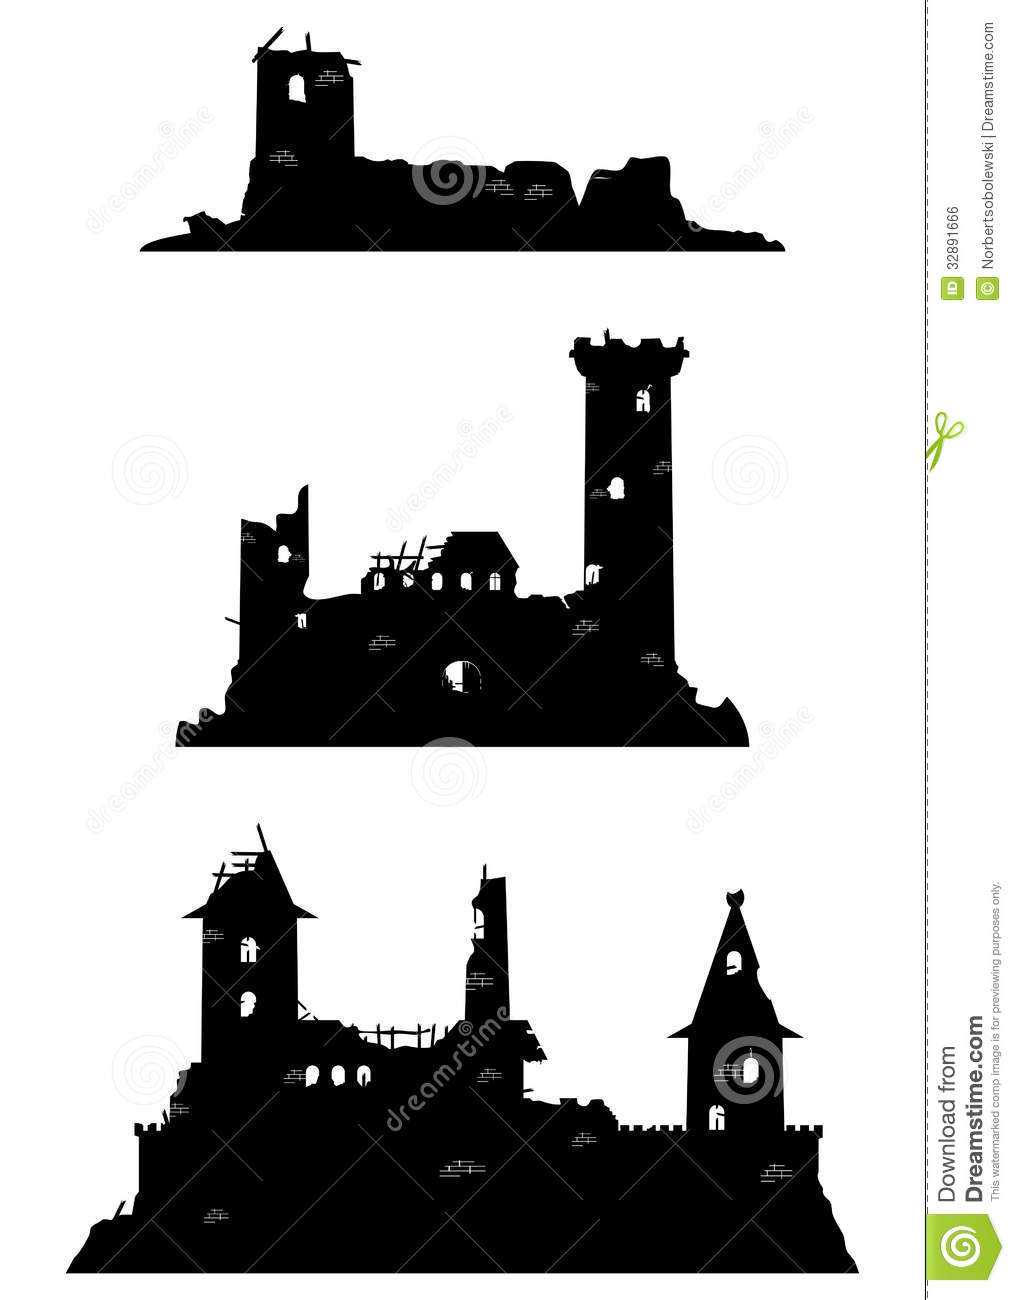 Castle Ruins Royalty Free Stock Image - Image: 32891666